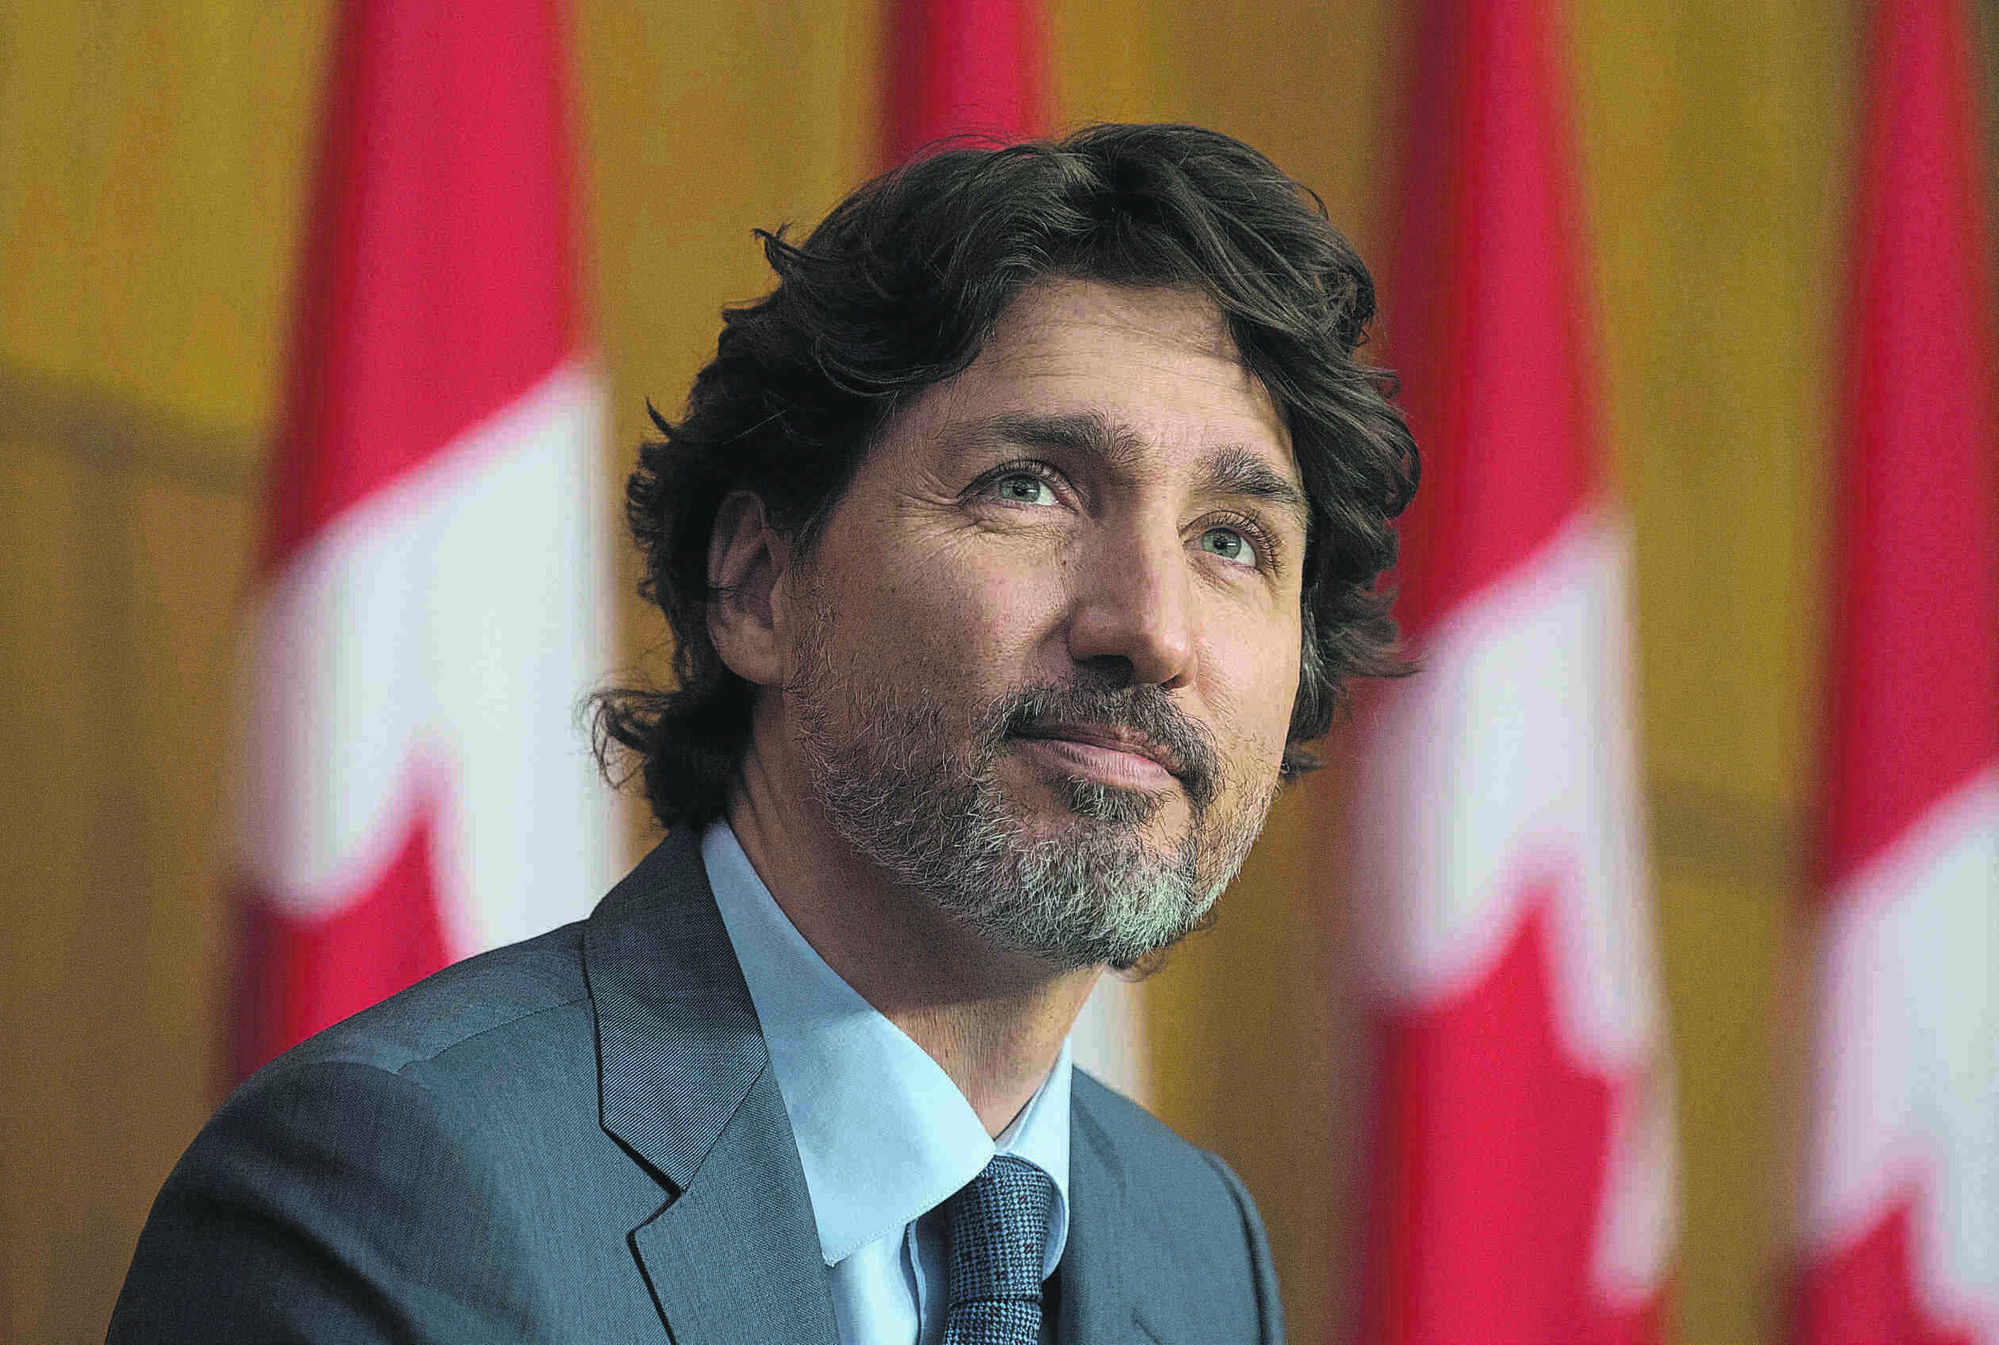 Prime Minister Justin Trudeau expressed optimism Wednesday that the federal government's vaccination timeline could be accelerated THE CANADIAN PRESS/Adrian Wyld